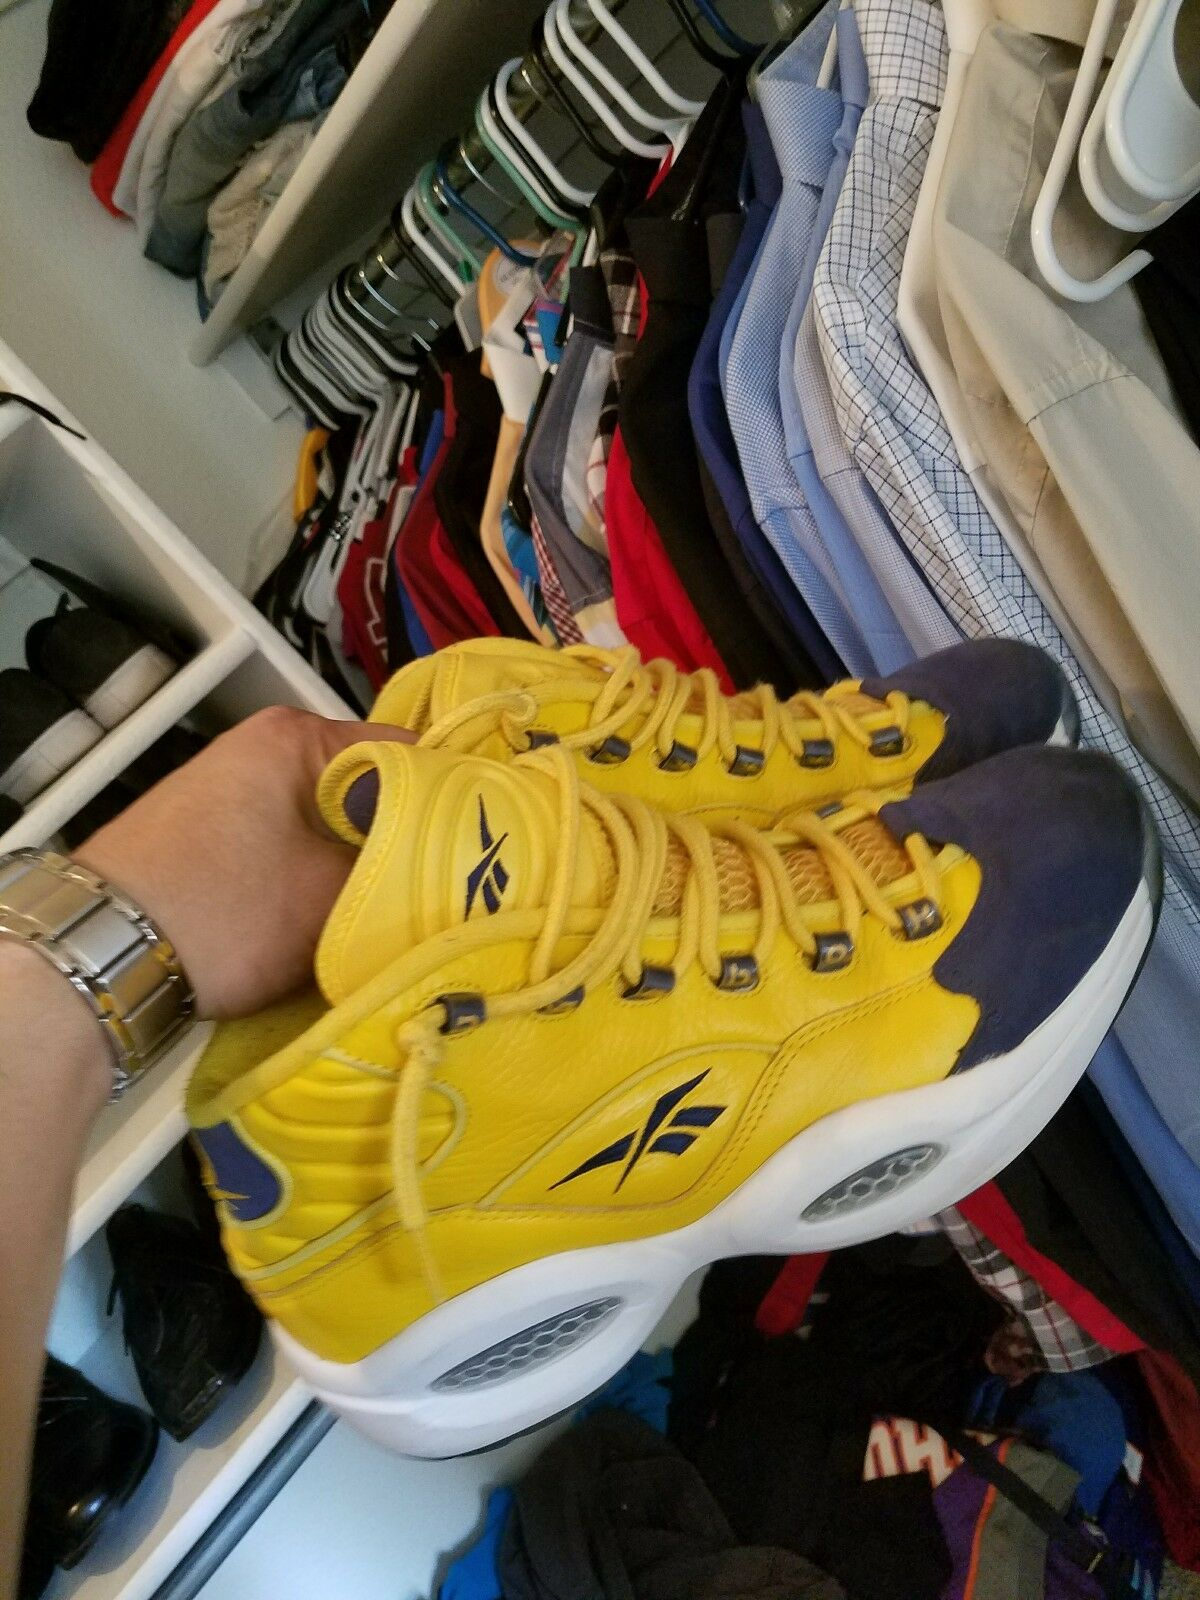 Iverson Questions all star yellow size 10